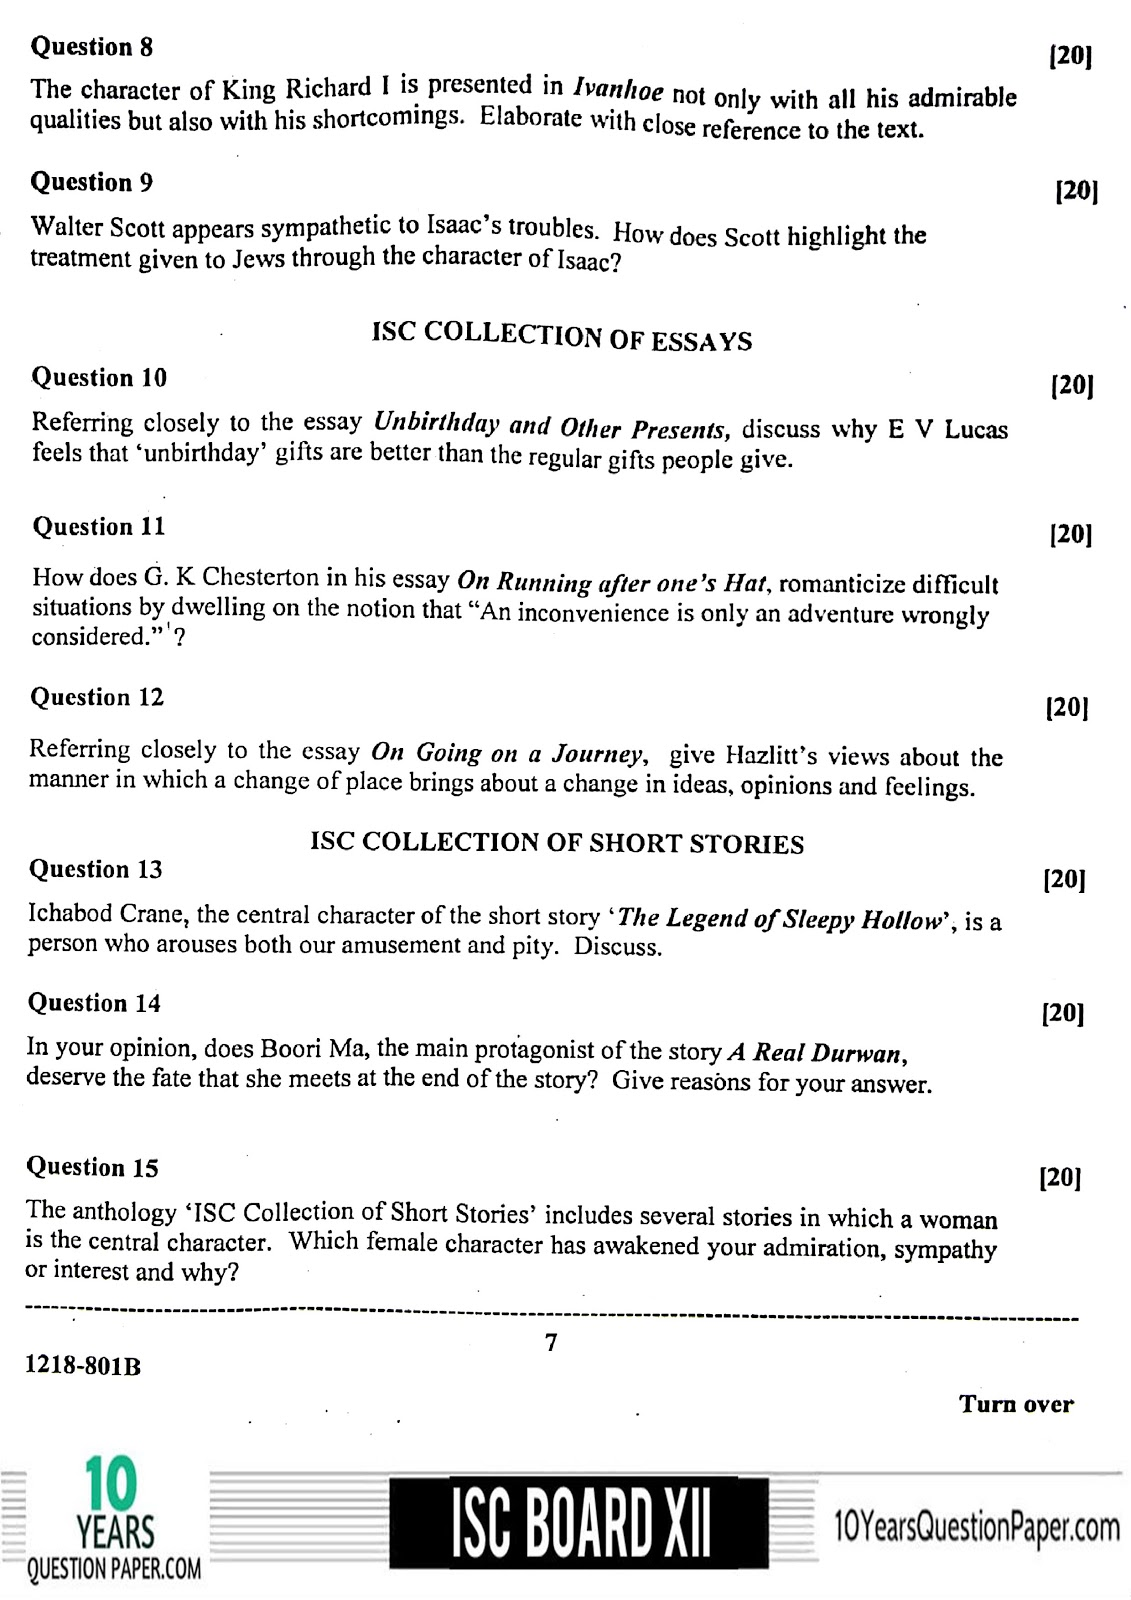 ISC Class 12 English Literature 2018 Question Paper